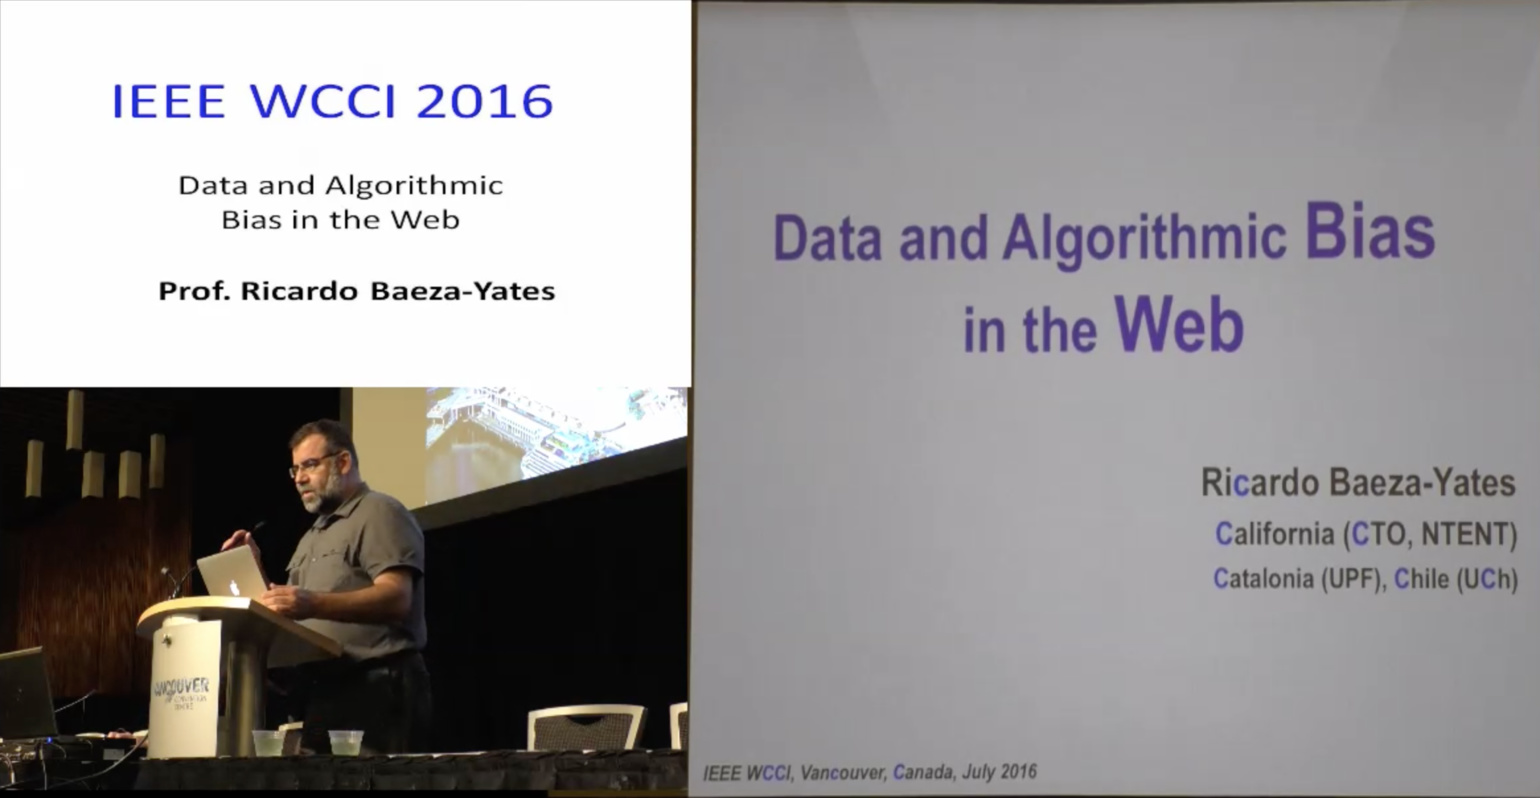 Data and Algorithmic Bias in the Web - Ricardo Baeza-Yates - WCCI 2016